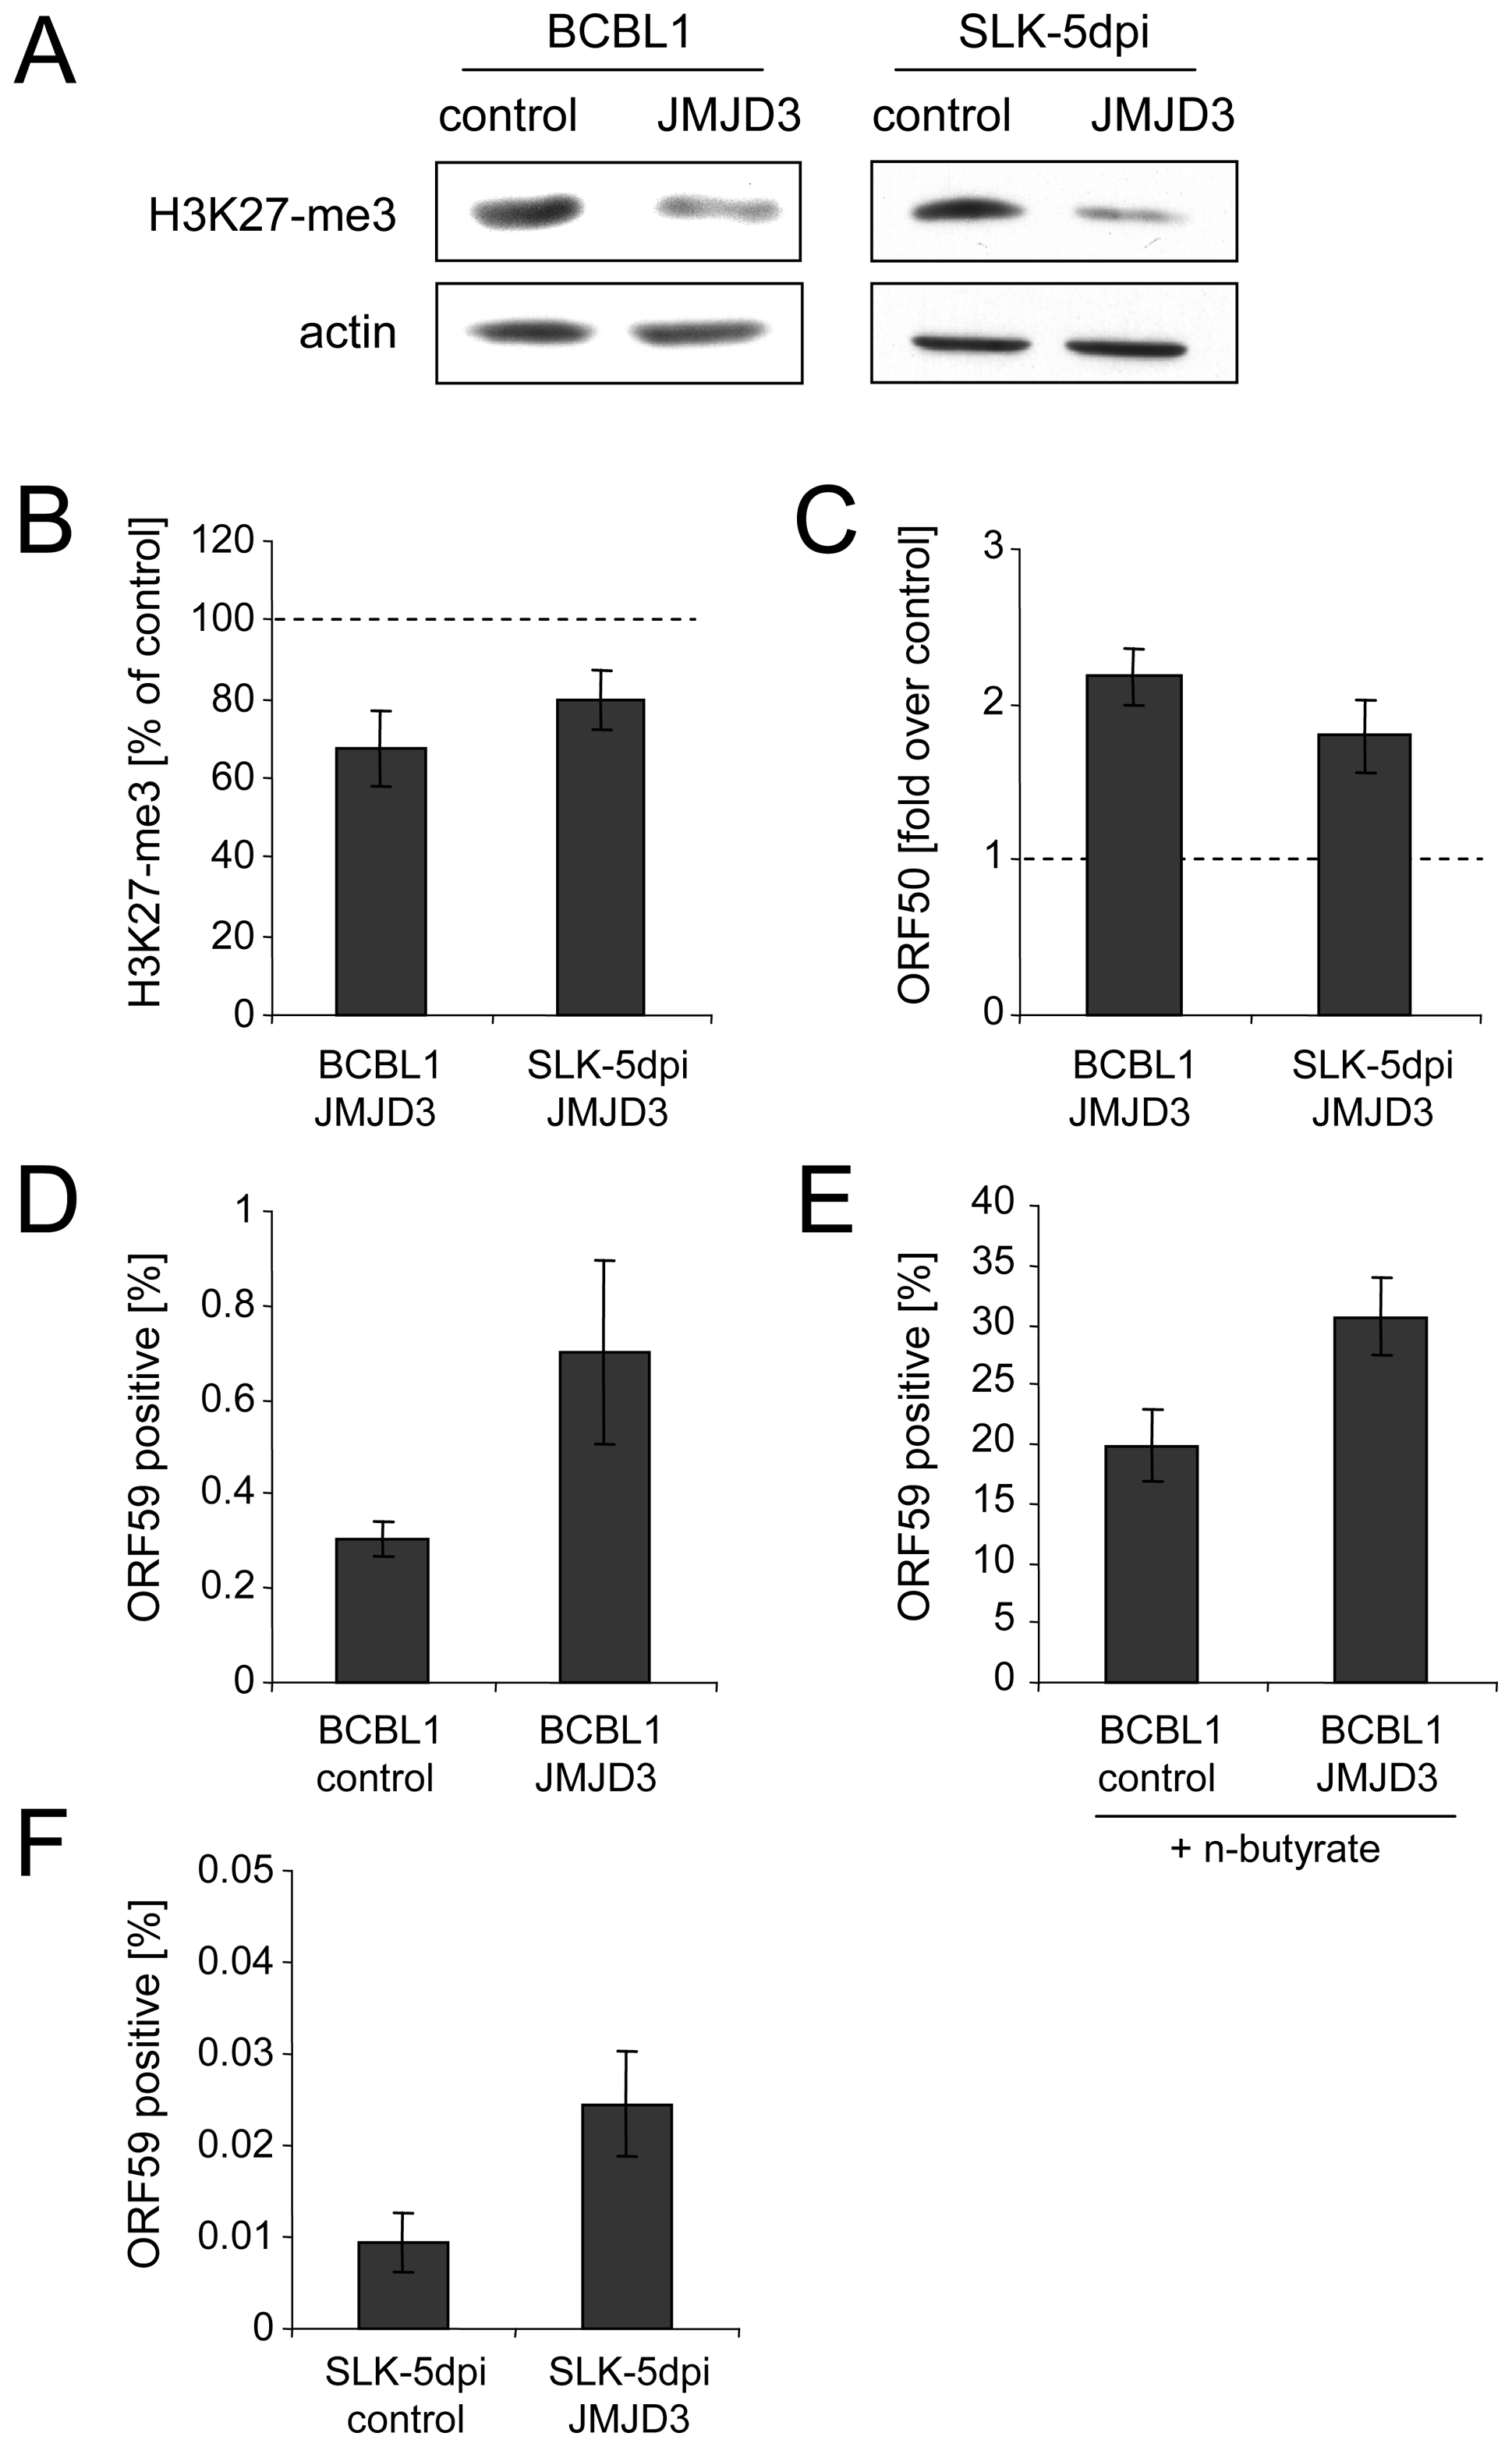 Consequences of JMJD3 expression in BCBL1 and <i>de novo</i> infected SLK cells.